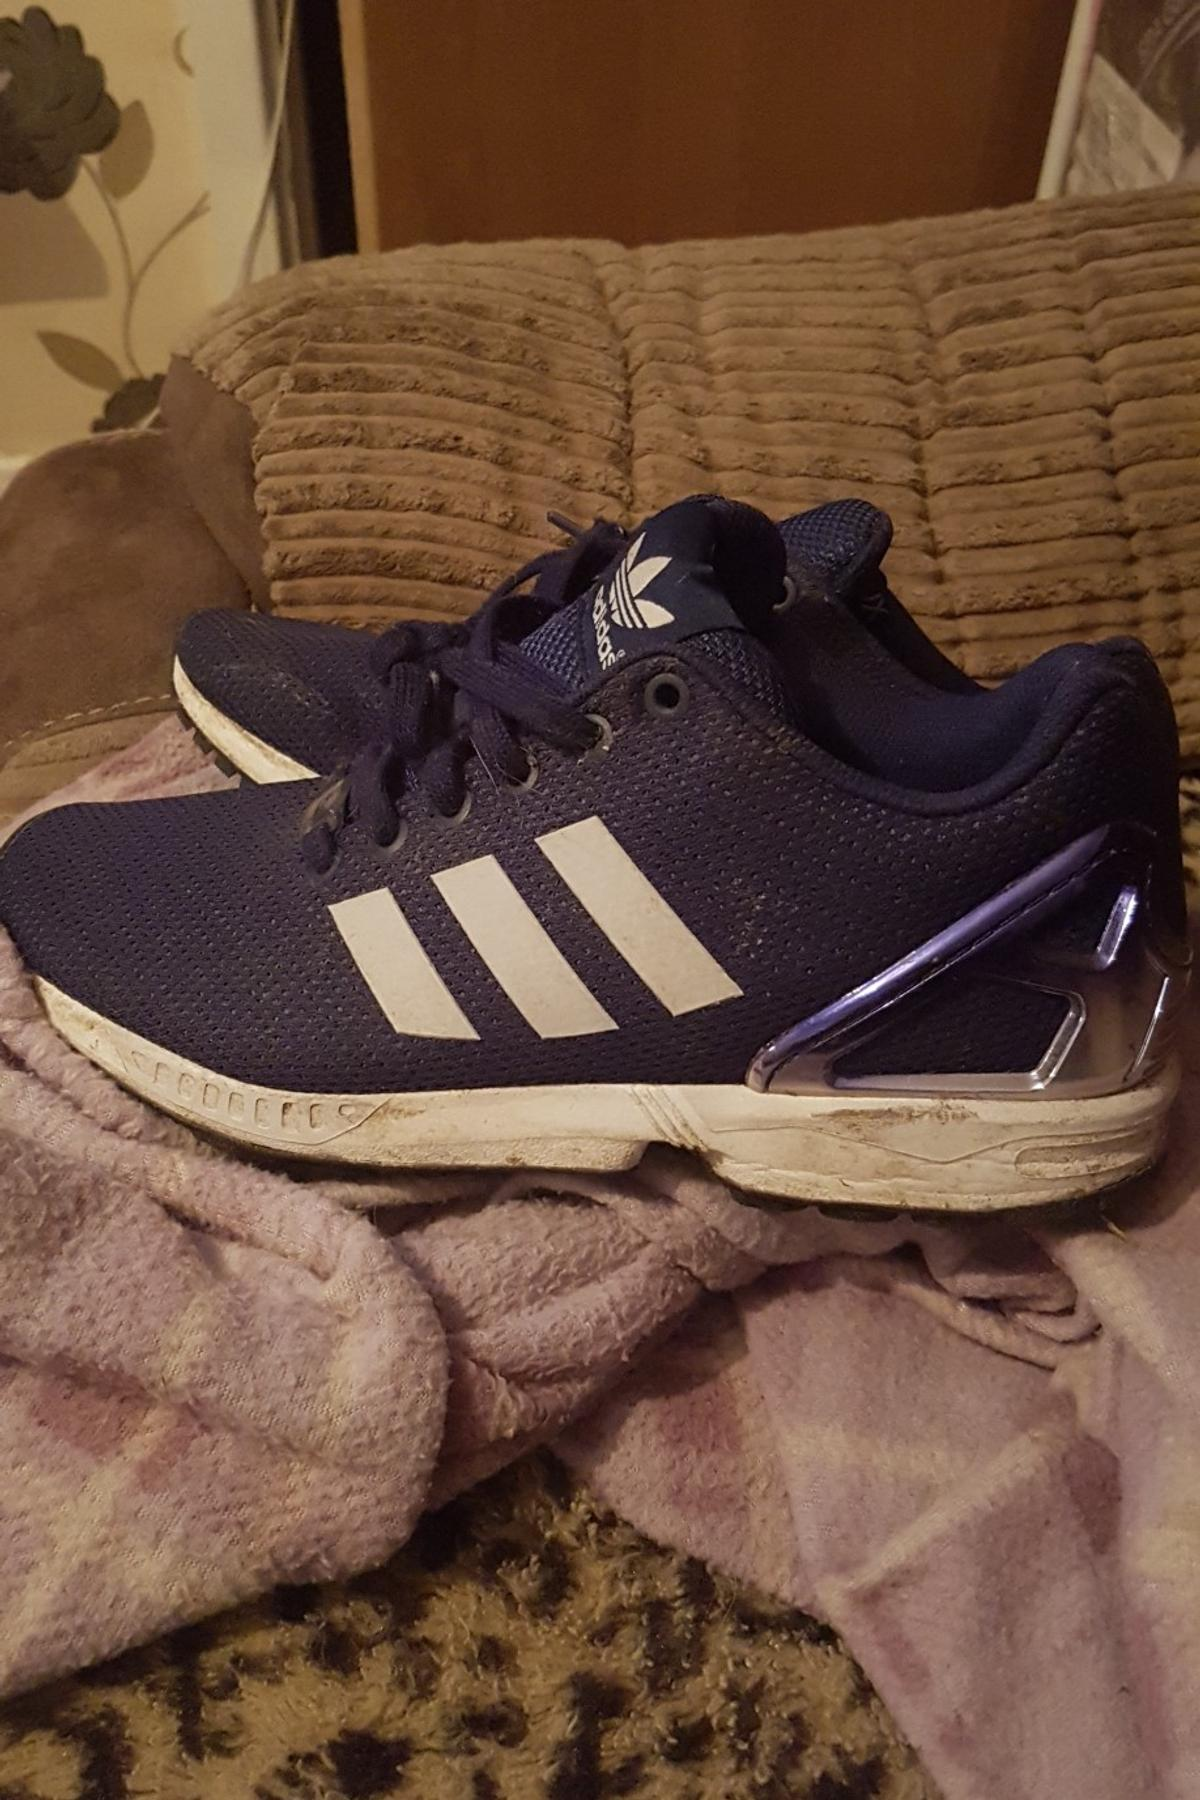 salado Equipo de juegos Hito  Adidas Torsion zx flux trainers in Doncaster for £40.00 for sale   Shpock